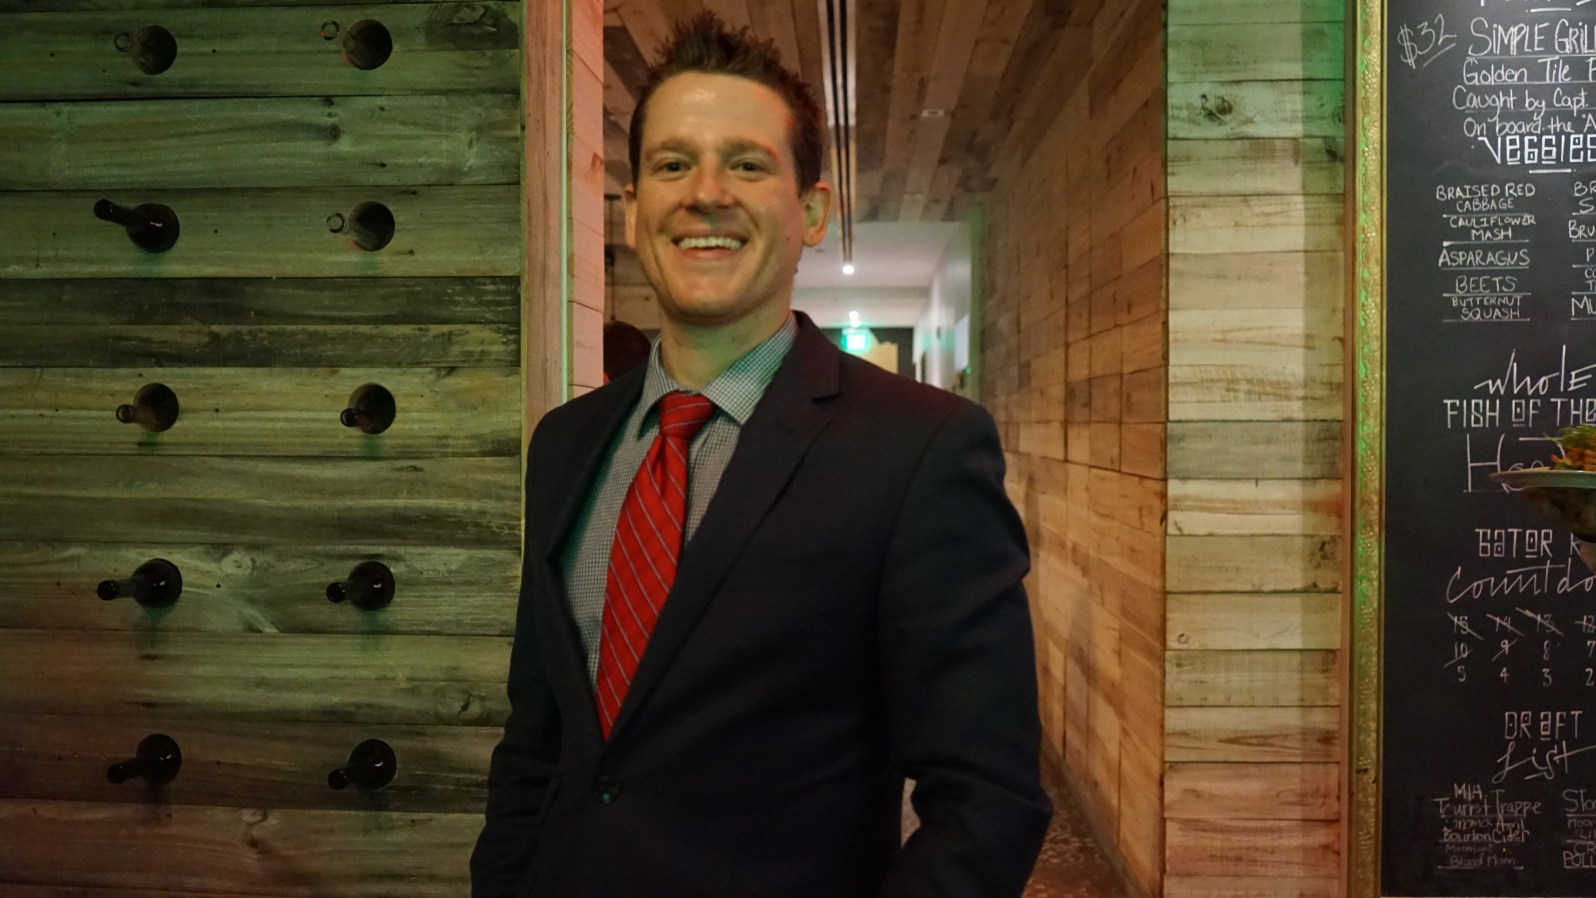 Colin Speer, general manager at The Spillover (Credit: Roshan Nebhrajani/The New Tropic)